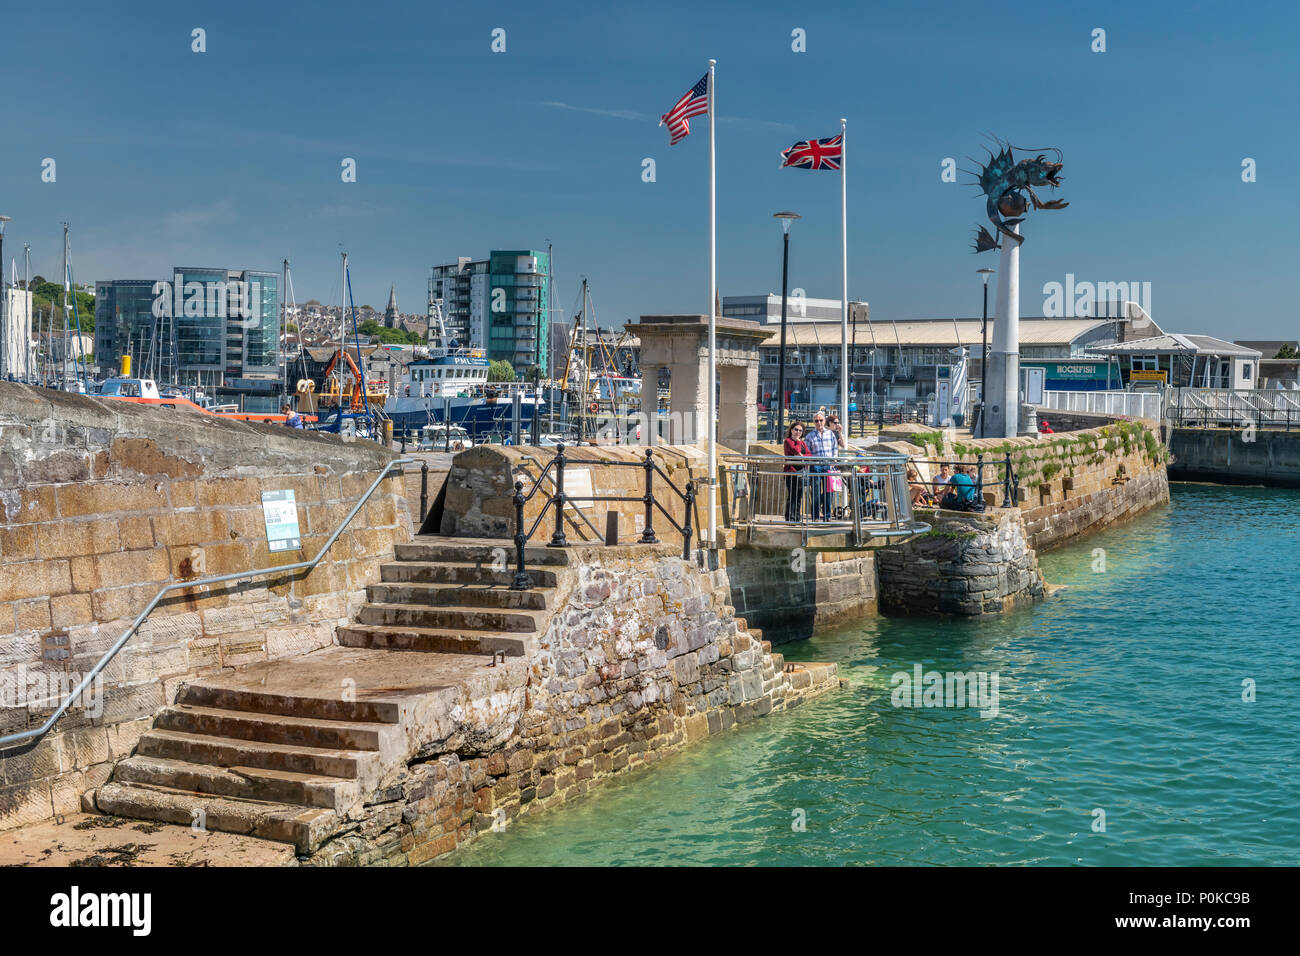 The Mayflower Steps in Plymouth, England. Although not the actual site where the Pilgrim Father's departed, it is close enough to be a major attractio - Stock Image